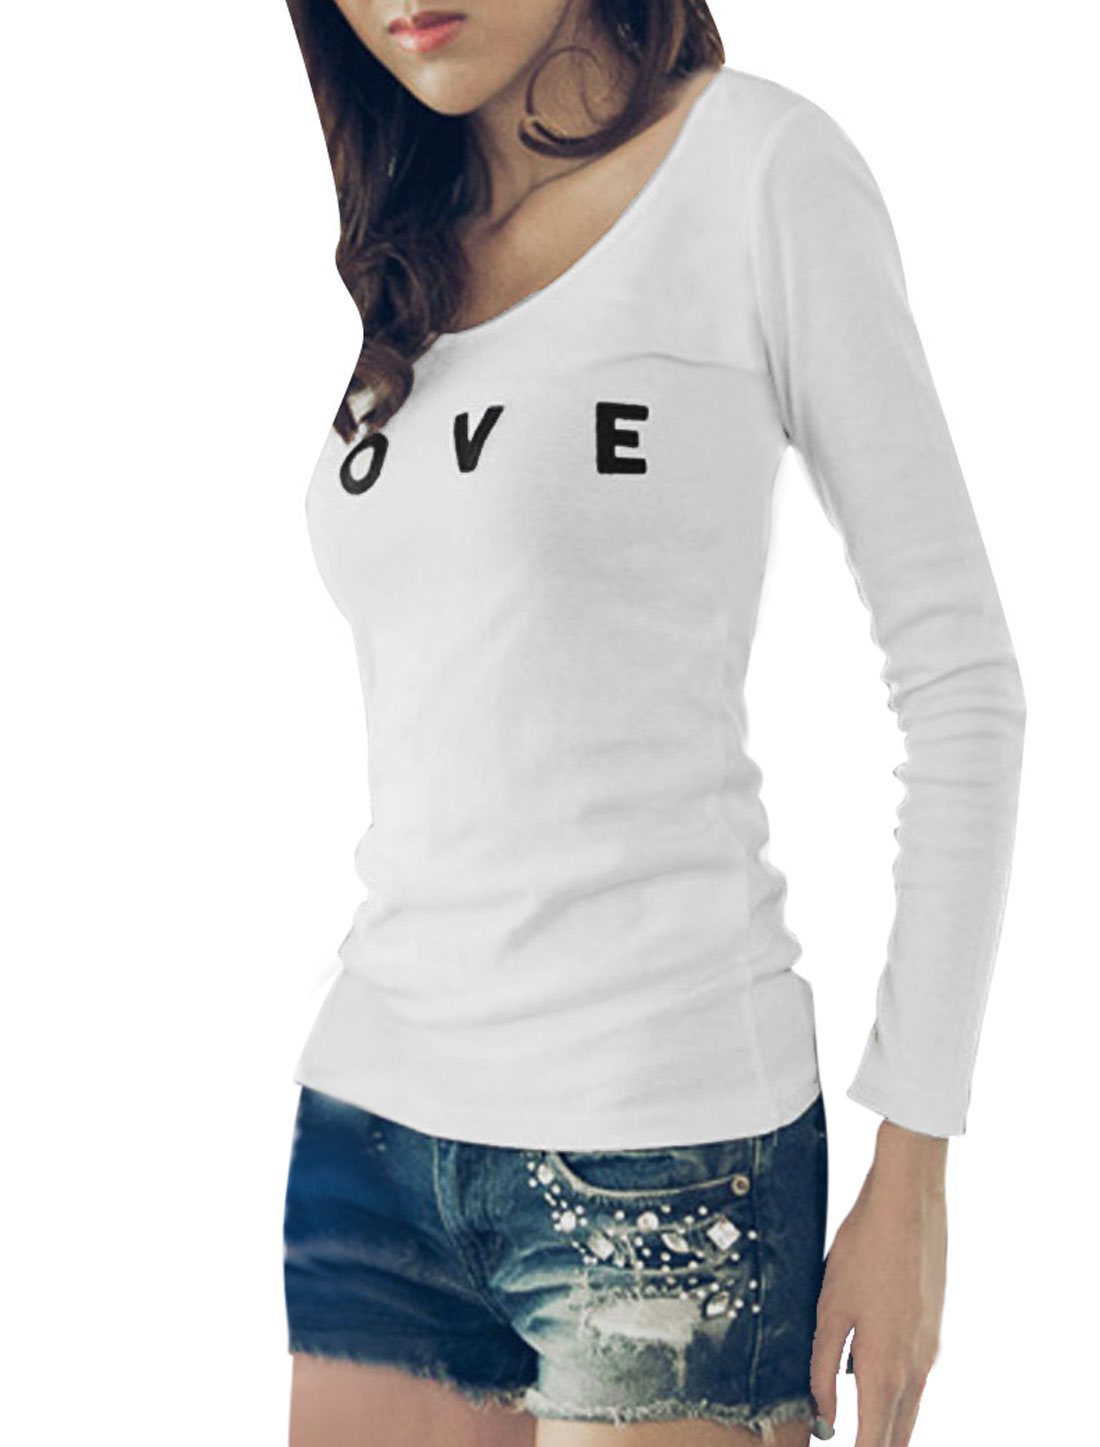 Women White Pullover Long Sleeve Letters Prints Loose Leisure Top Shirt XS